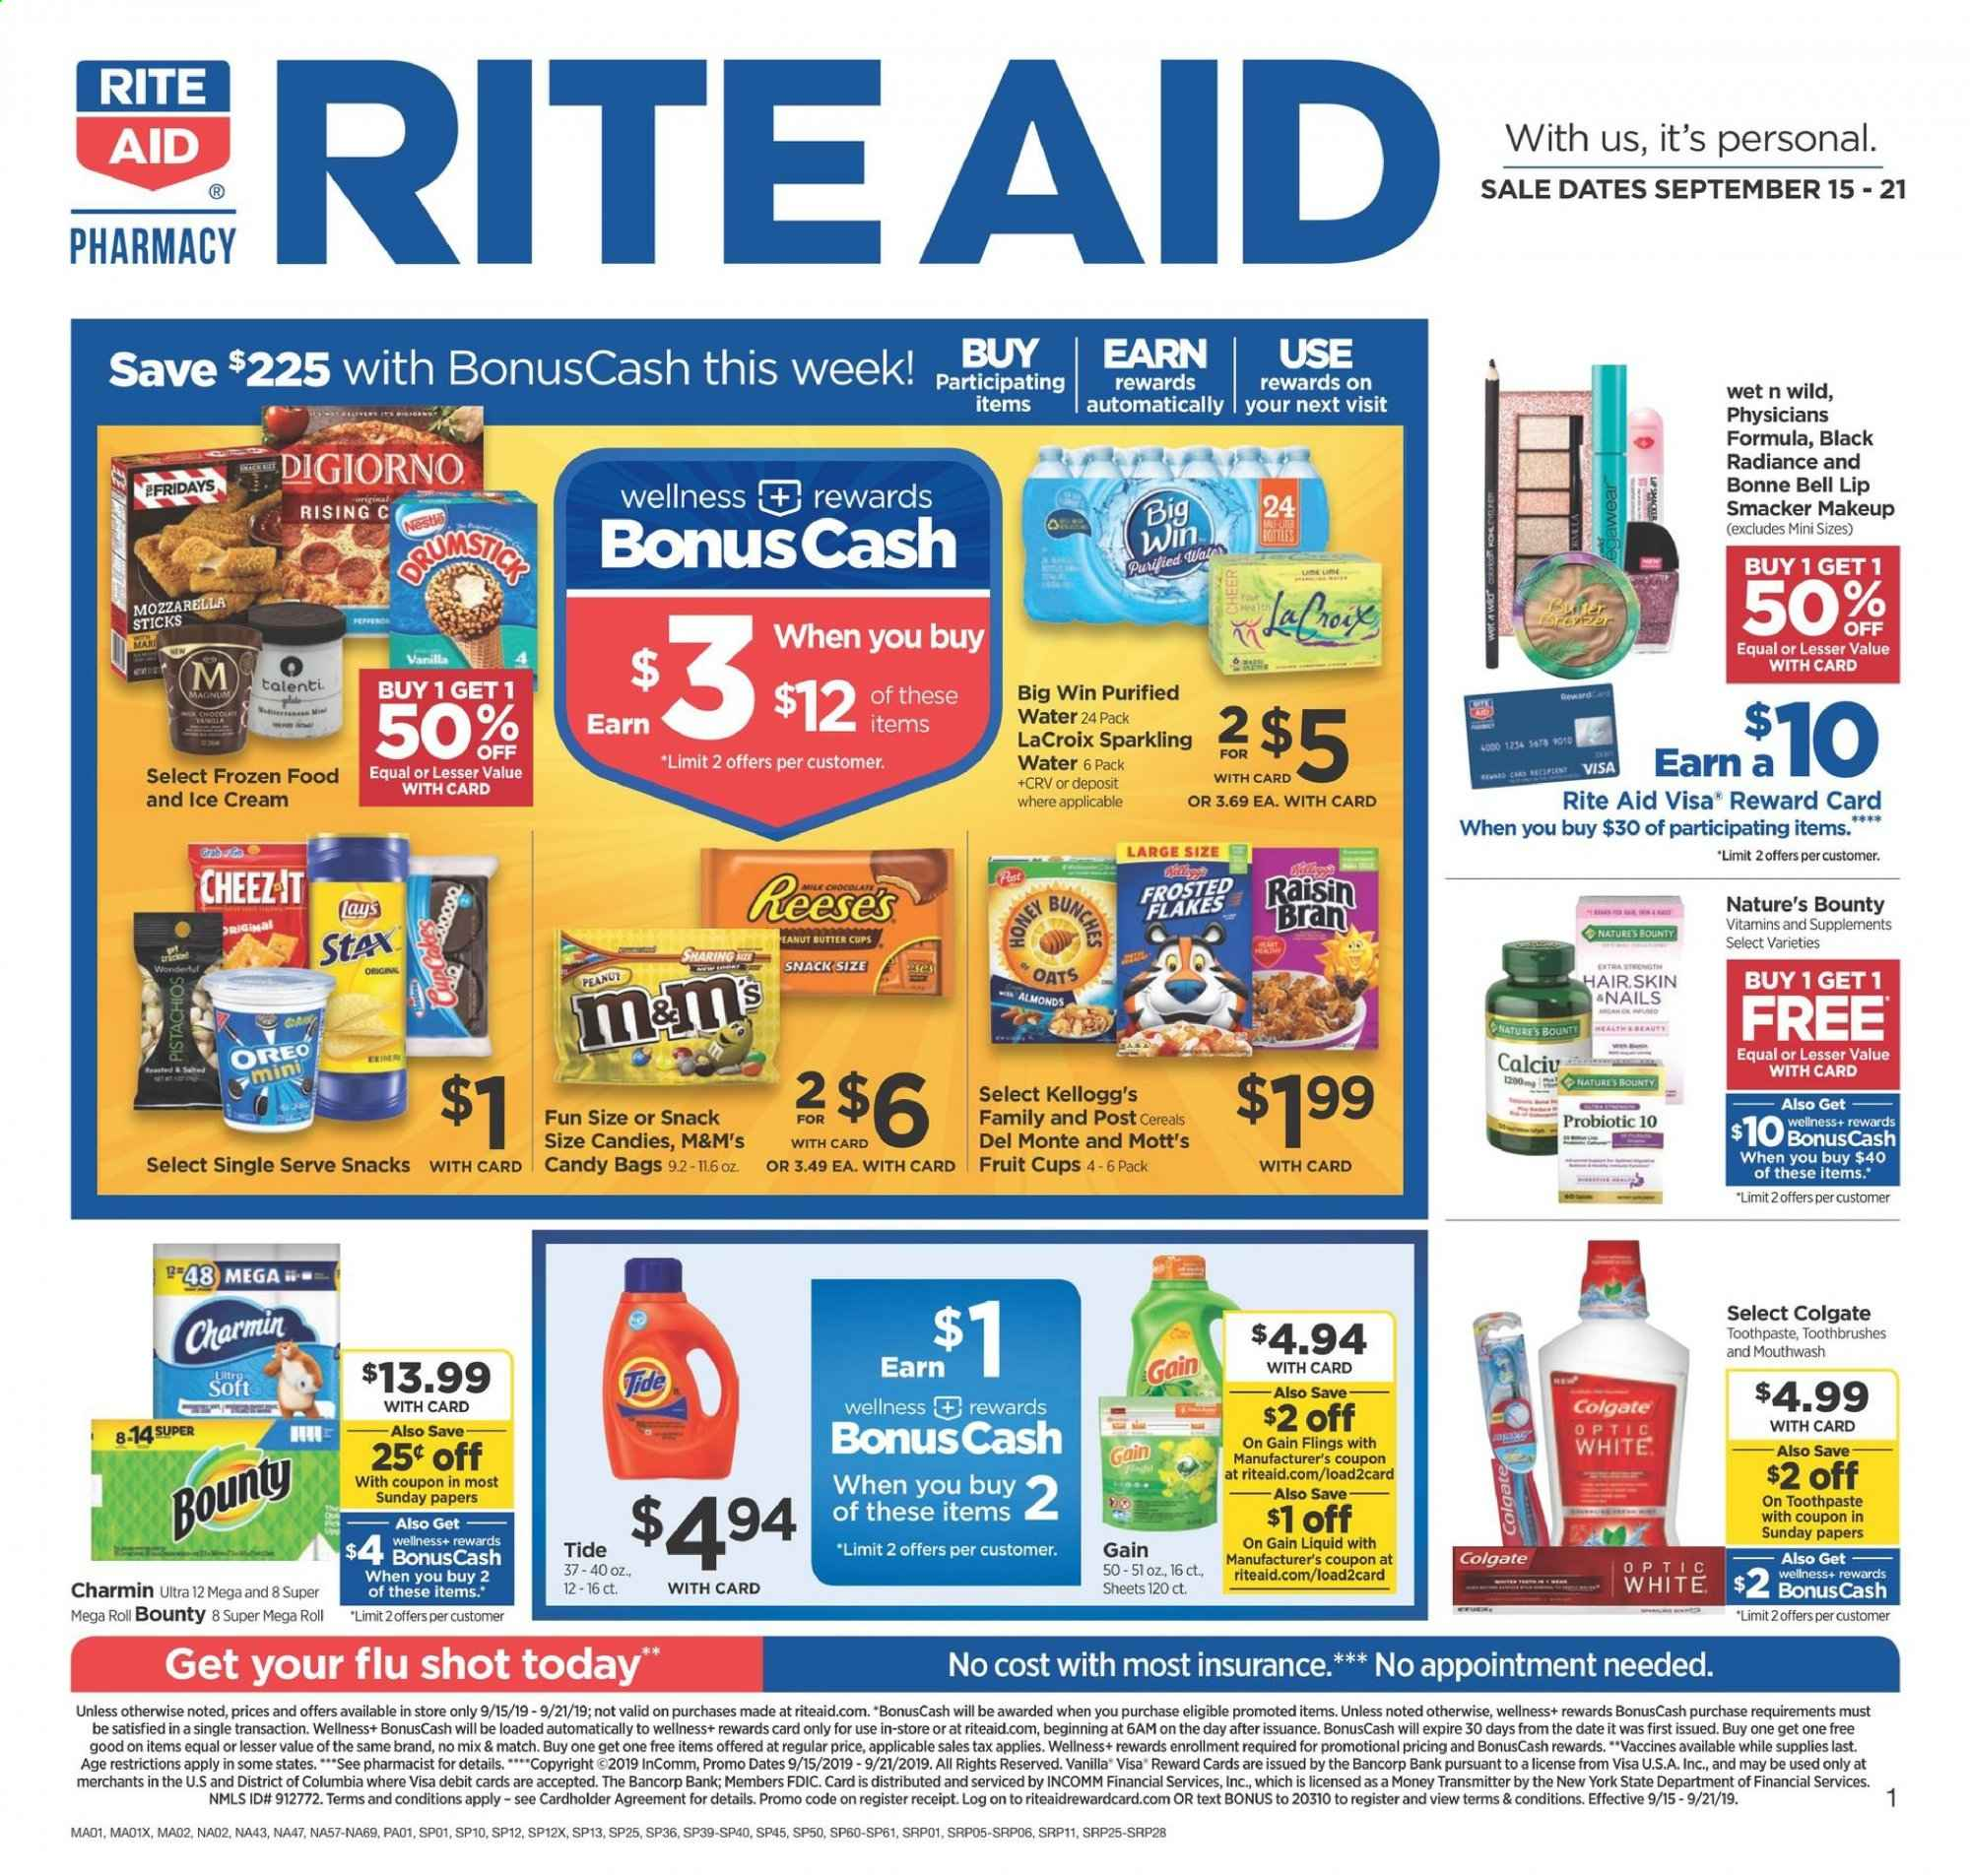 RITE AID Flyer - 09.15.2019 - 09.21.2019 - Sales products - columbia, Magnum, ice cream, Oreo, Nestlé, chocolate, candy, Bounty, M&M's, snack, Lay's, oats, cereals, almonds, peanuts, sparkling water, water, Gain, Tide, Colgate, toothpaste, mouthwash, makeup, plate, Frozen, Nature's Bounty. Page 1.